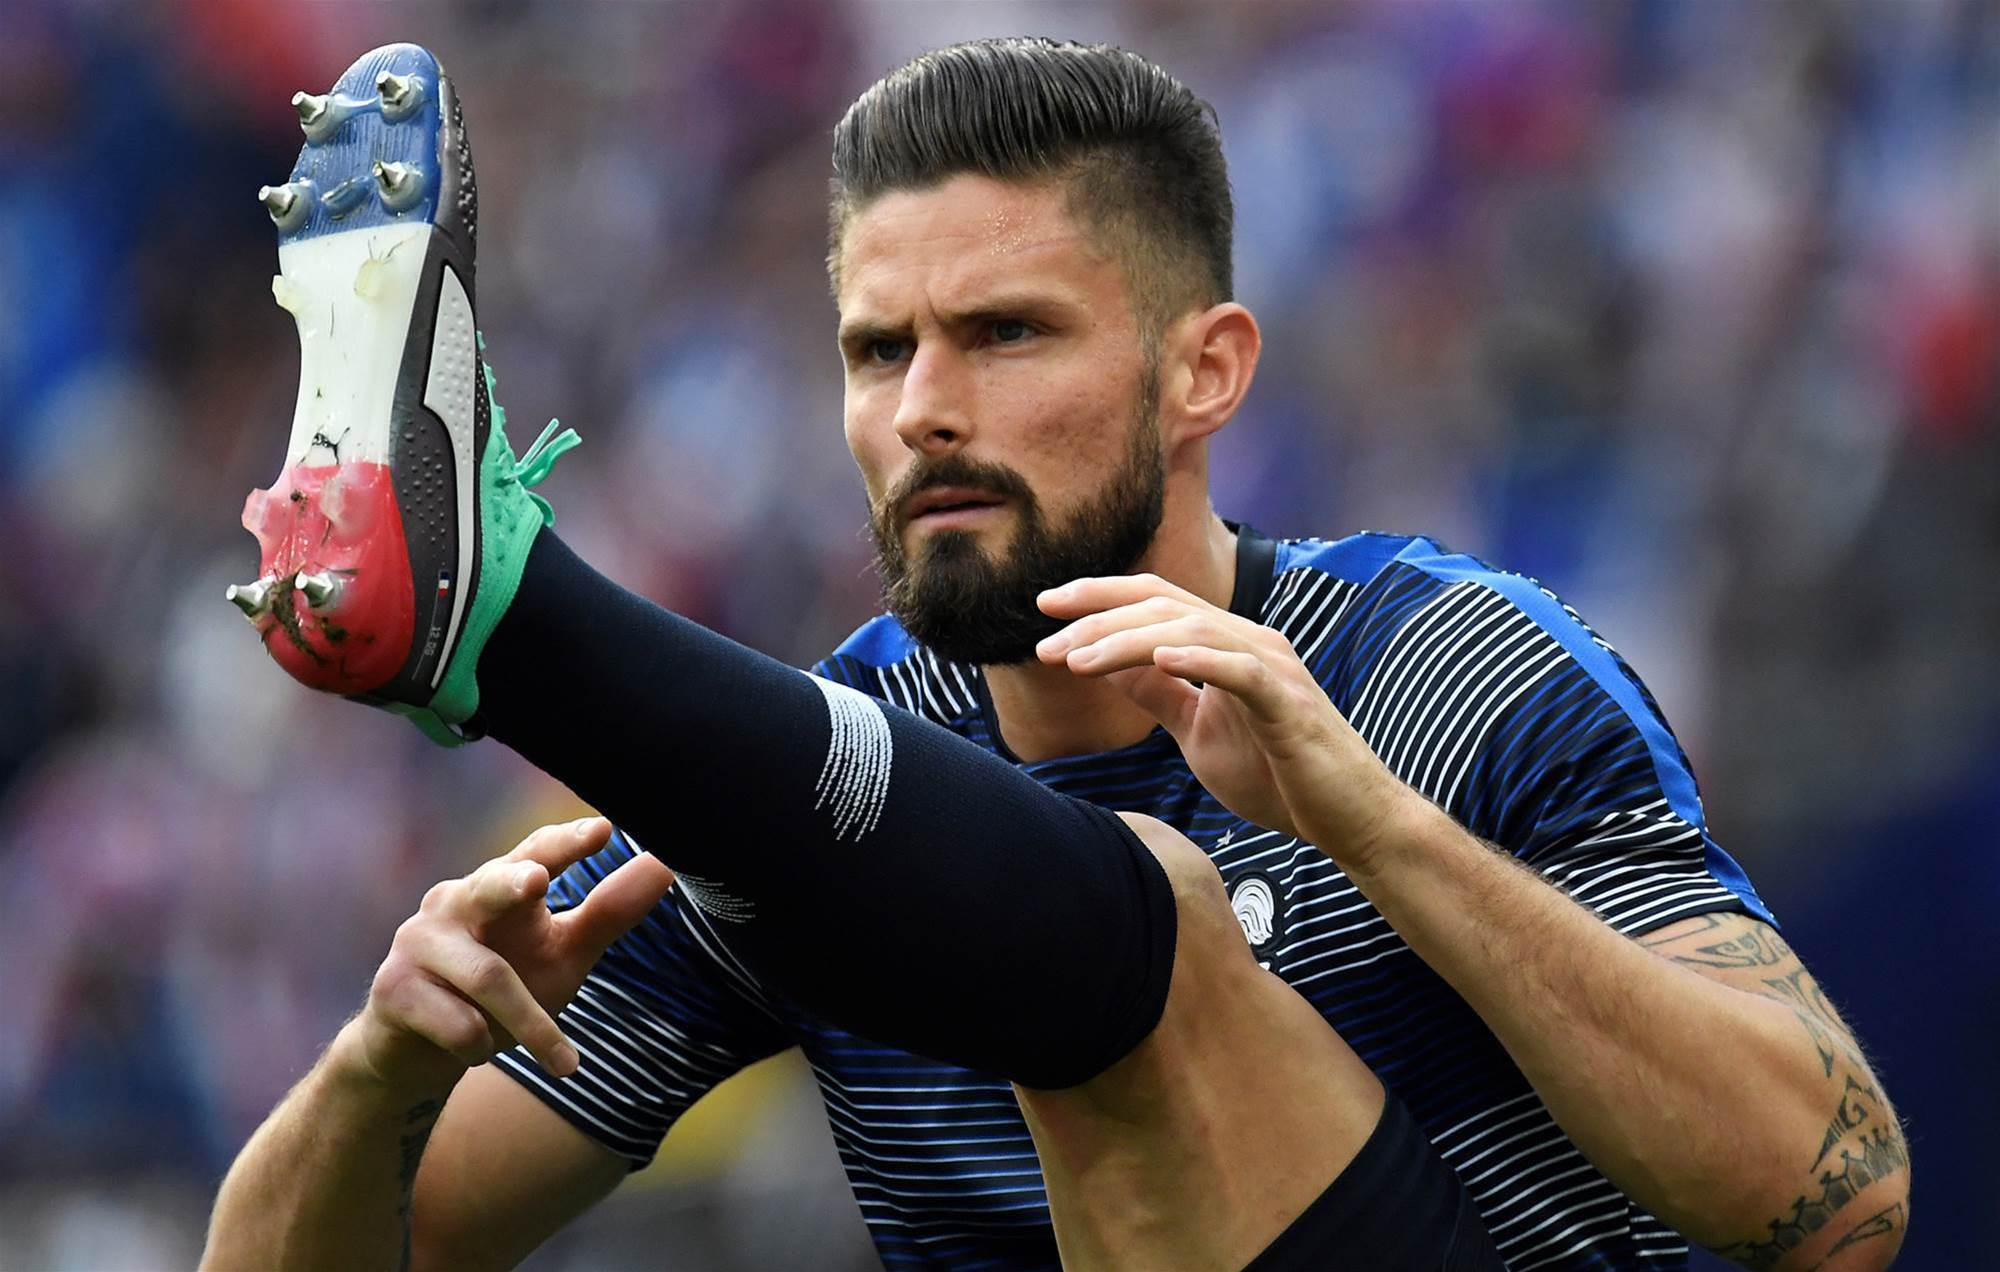 Olivier Giroud shows off custom PUMA boots